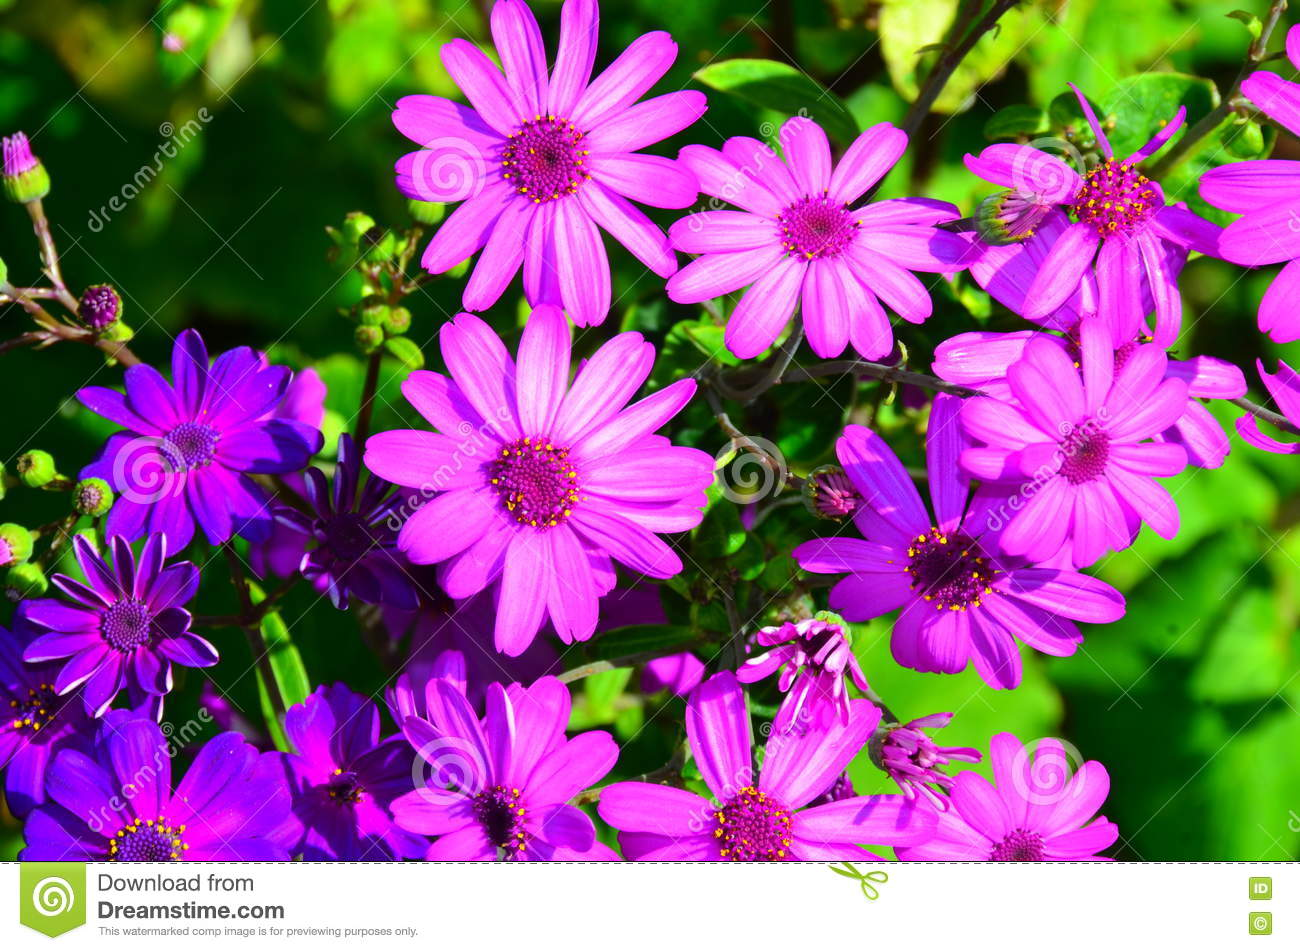 Daisy Flower In Garden Stock Photo Image Of Petal Plant 74395024